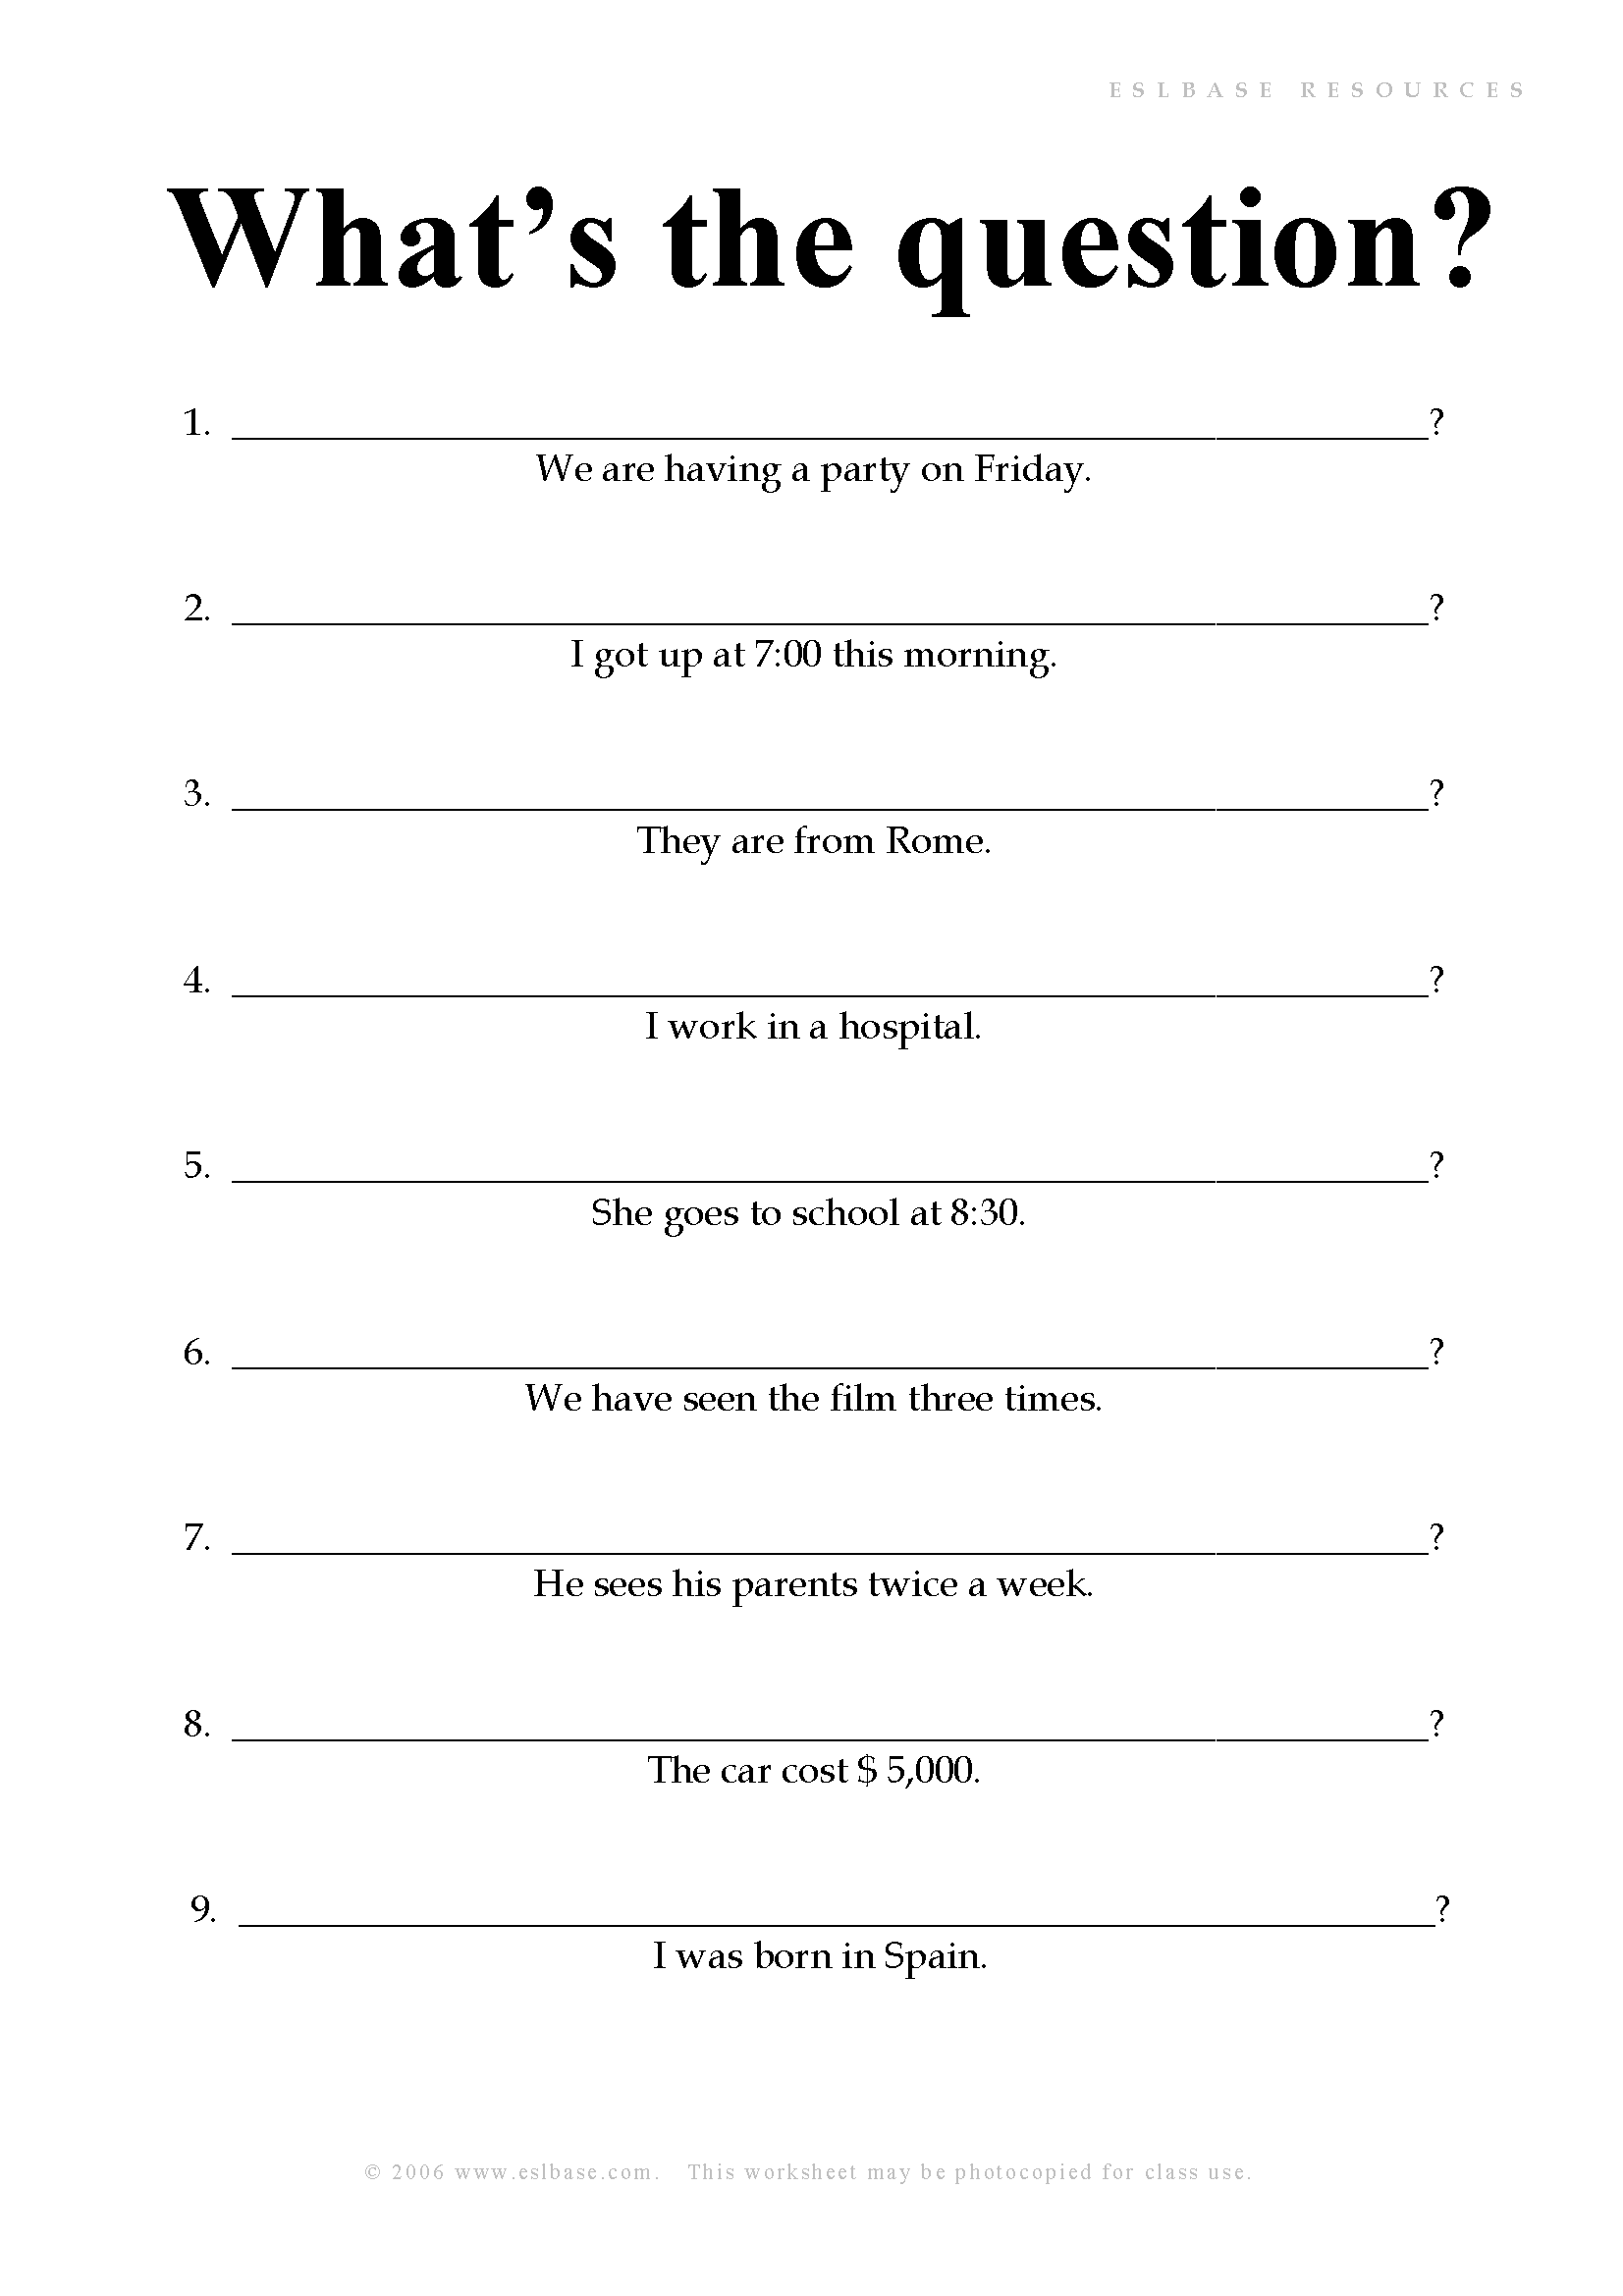 A Worksheet To Practise Forming Questions